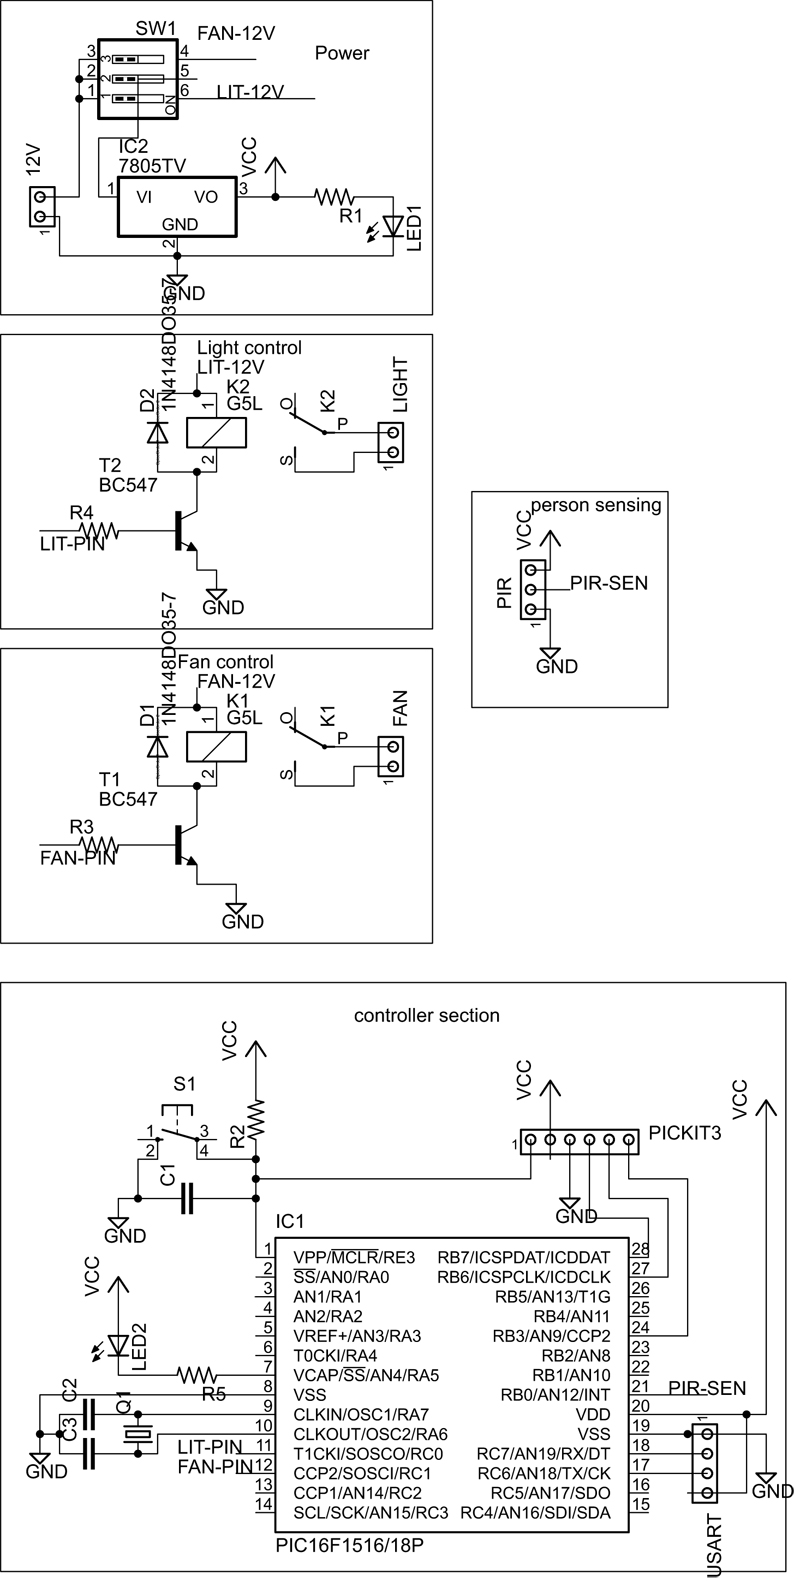 Circuit Diagram of Home automation project using embedded system, pic microcontroller